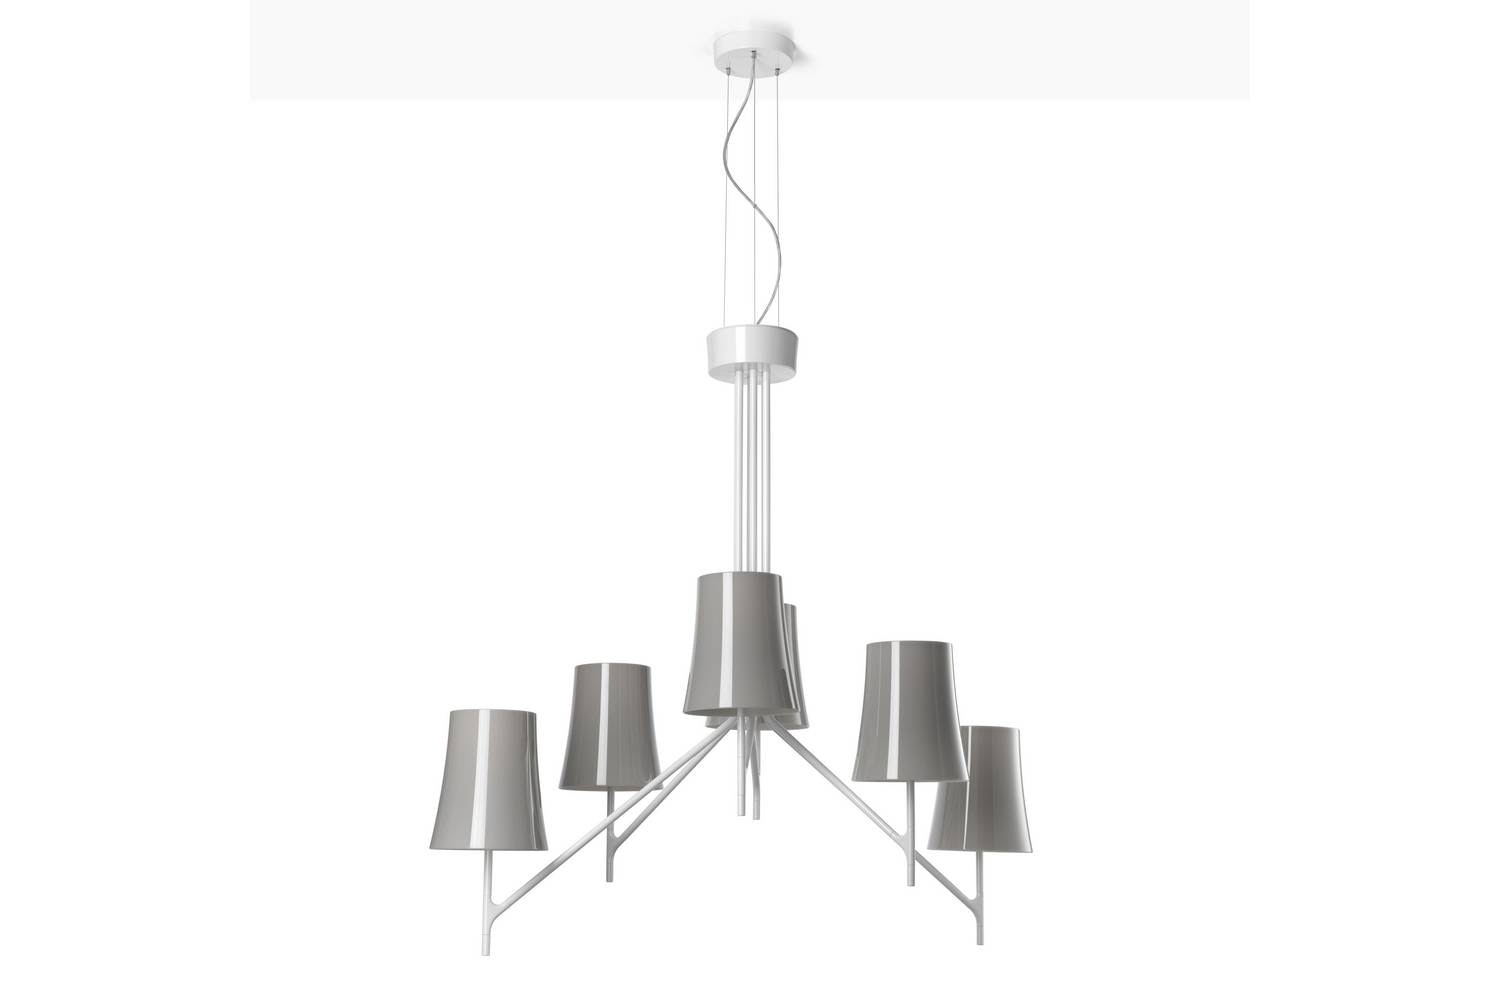 Birdie 6 Suspension Lamp by Ludovica & Roberto Palomba for Foscarini